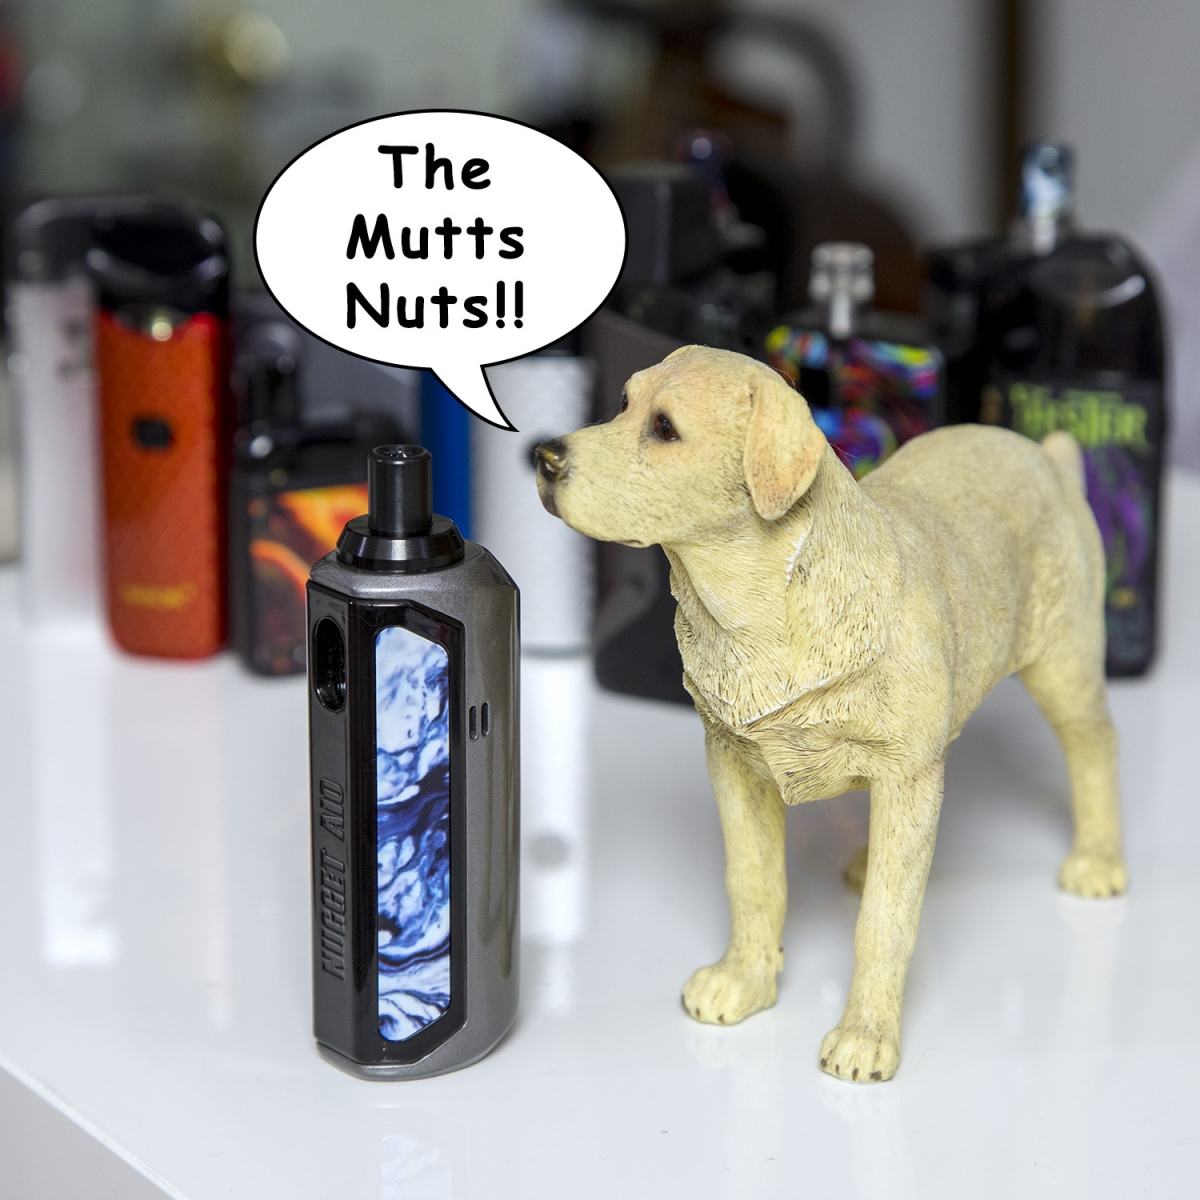 Artery Nugget AIO 40W Pod Kit the mutts nuts!